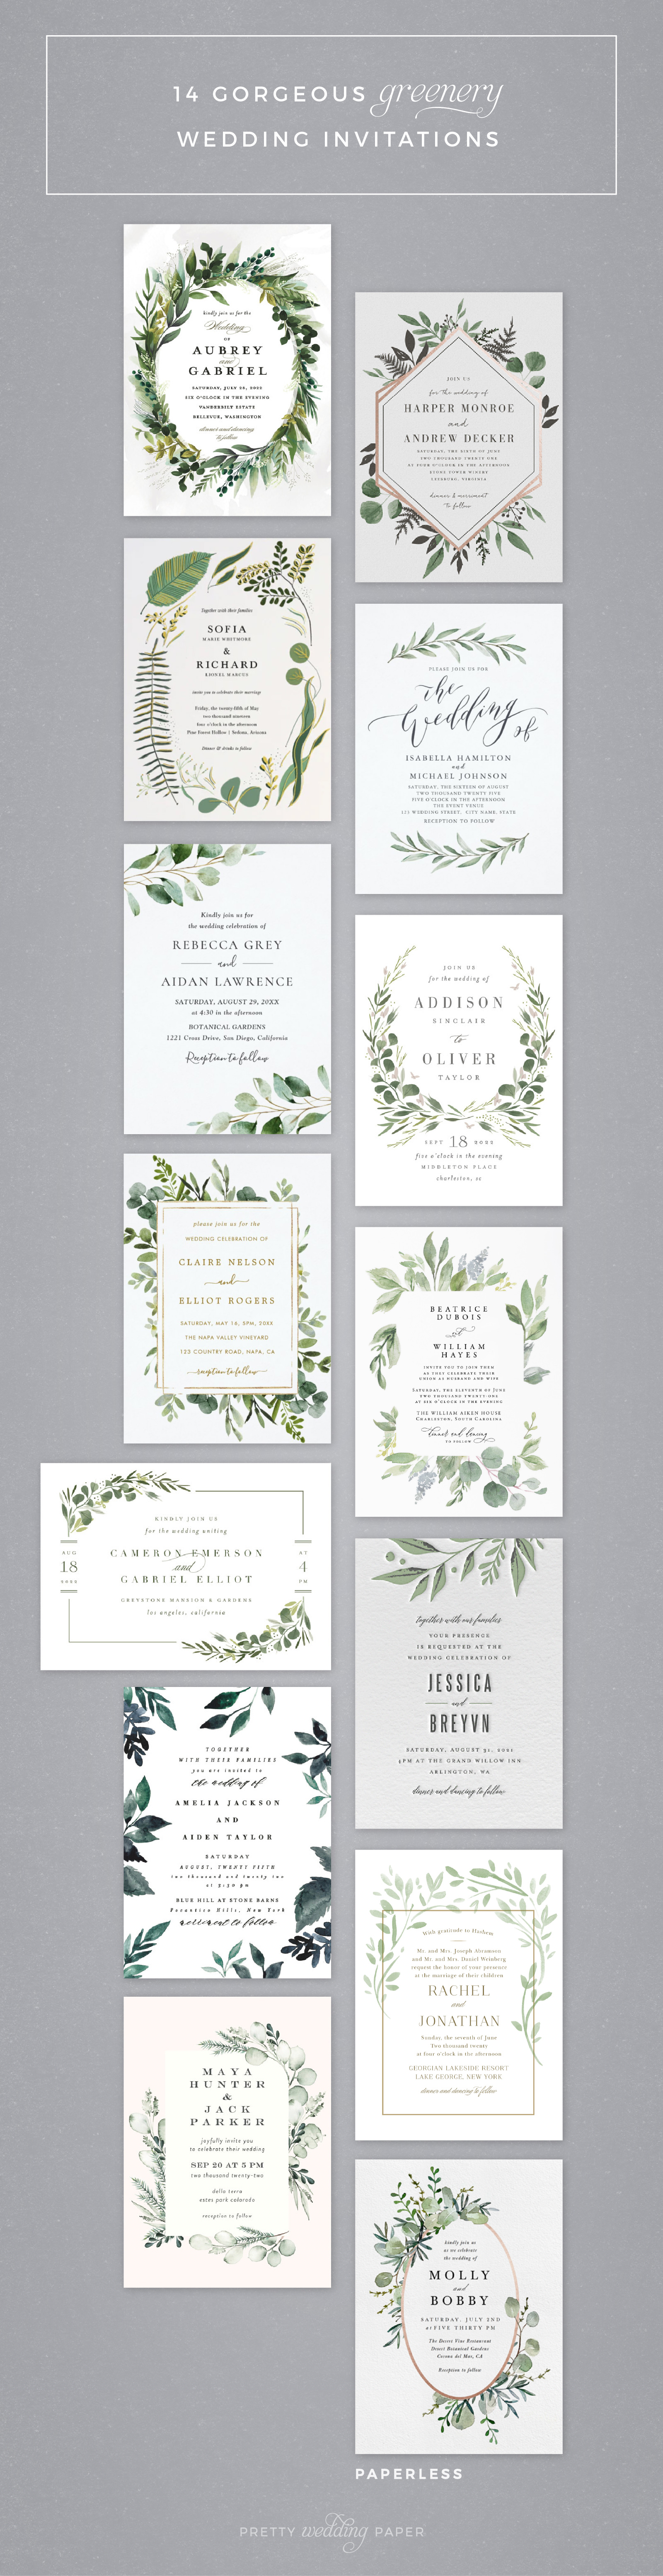 Selection of 14 greenery wedding invitations featuring delicate foliage, leaf, and eucalyptus elements on white backgrounds with gold foil, black or grey accents and text.